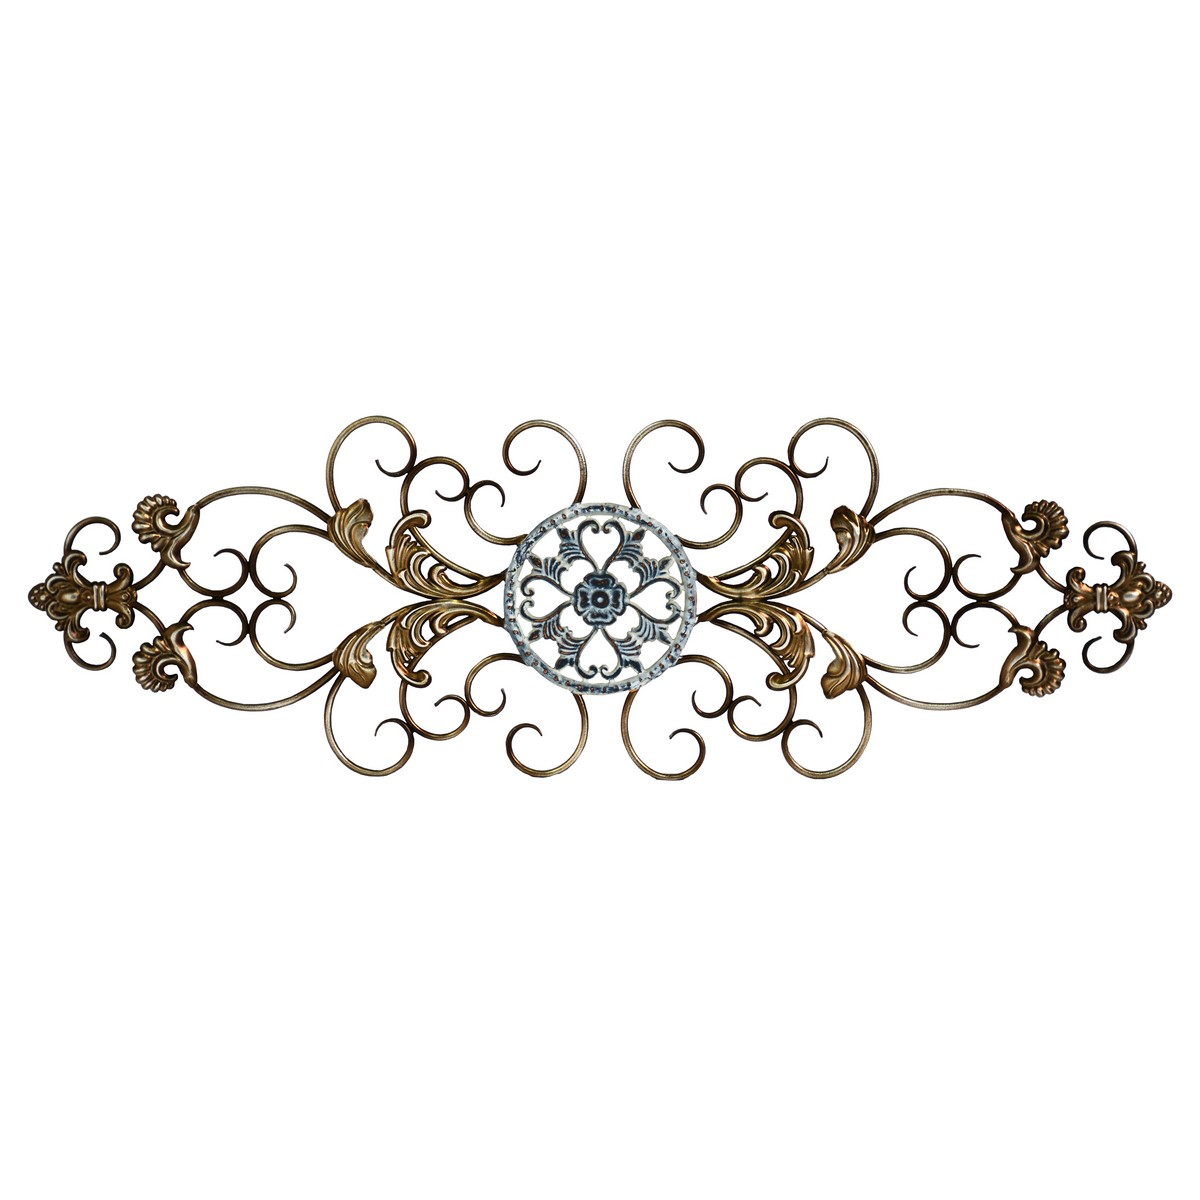 Stratton Home Decor Traditional Scroll Wall Decor - Champagne and Distressed Blue